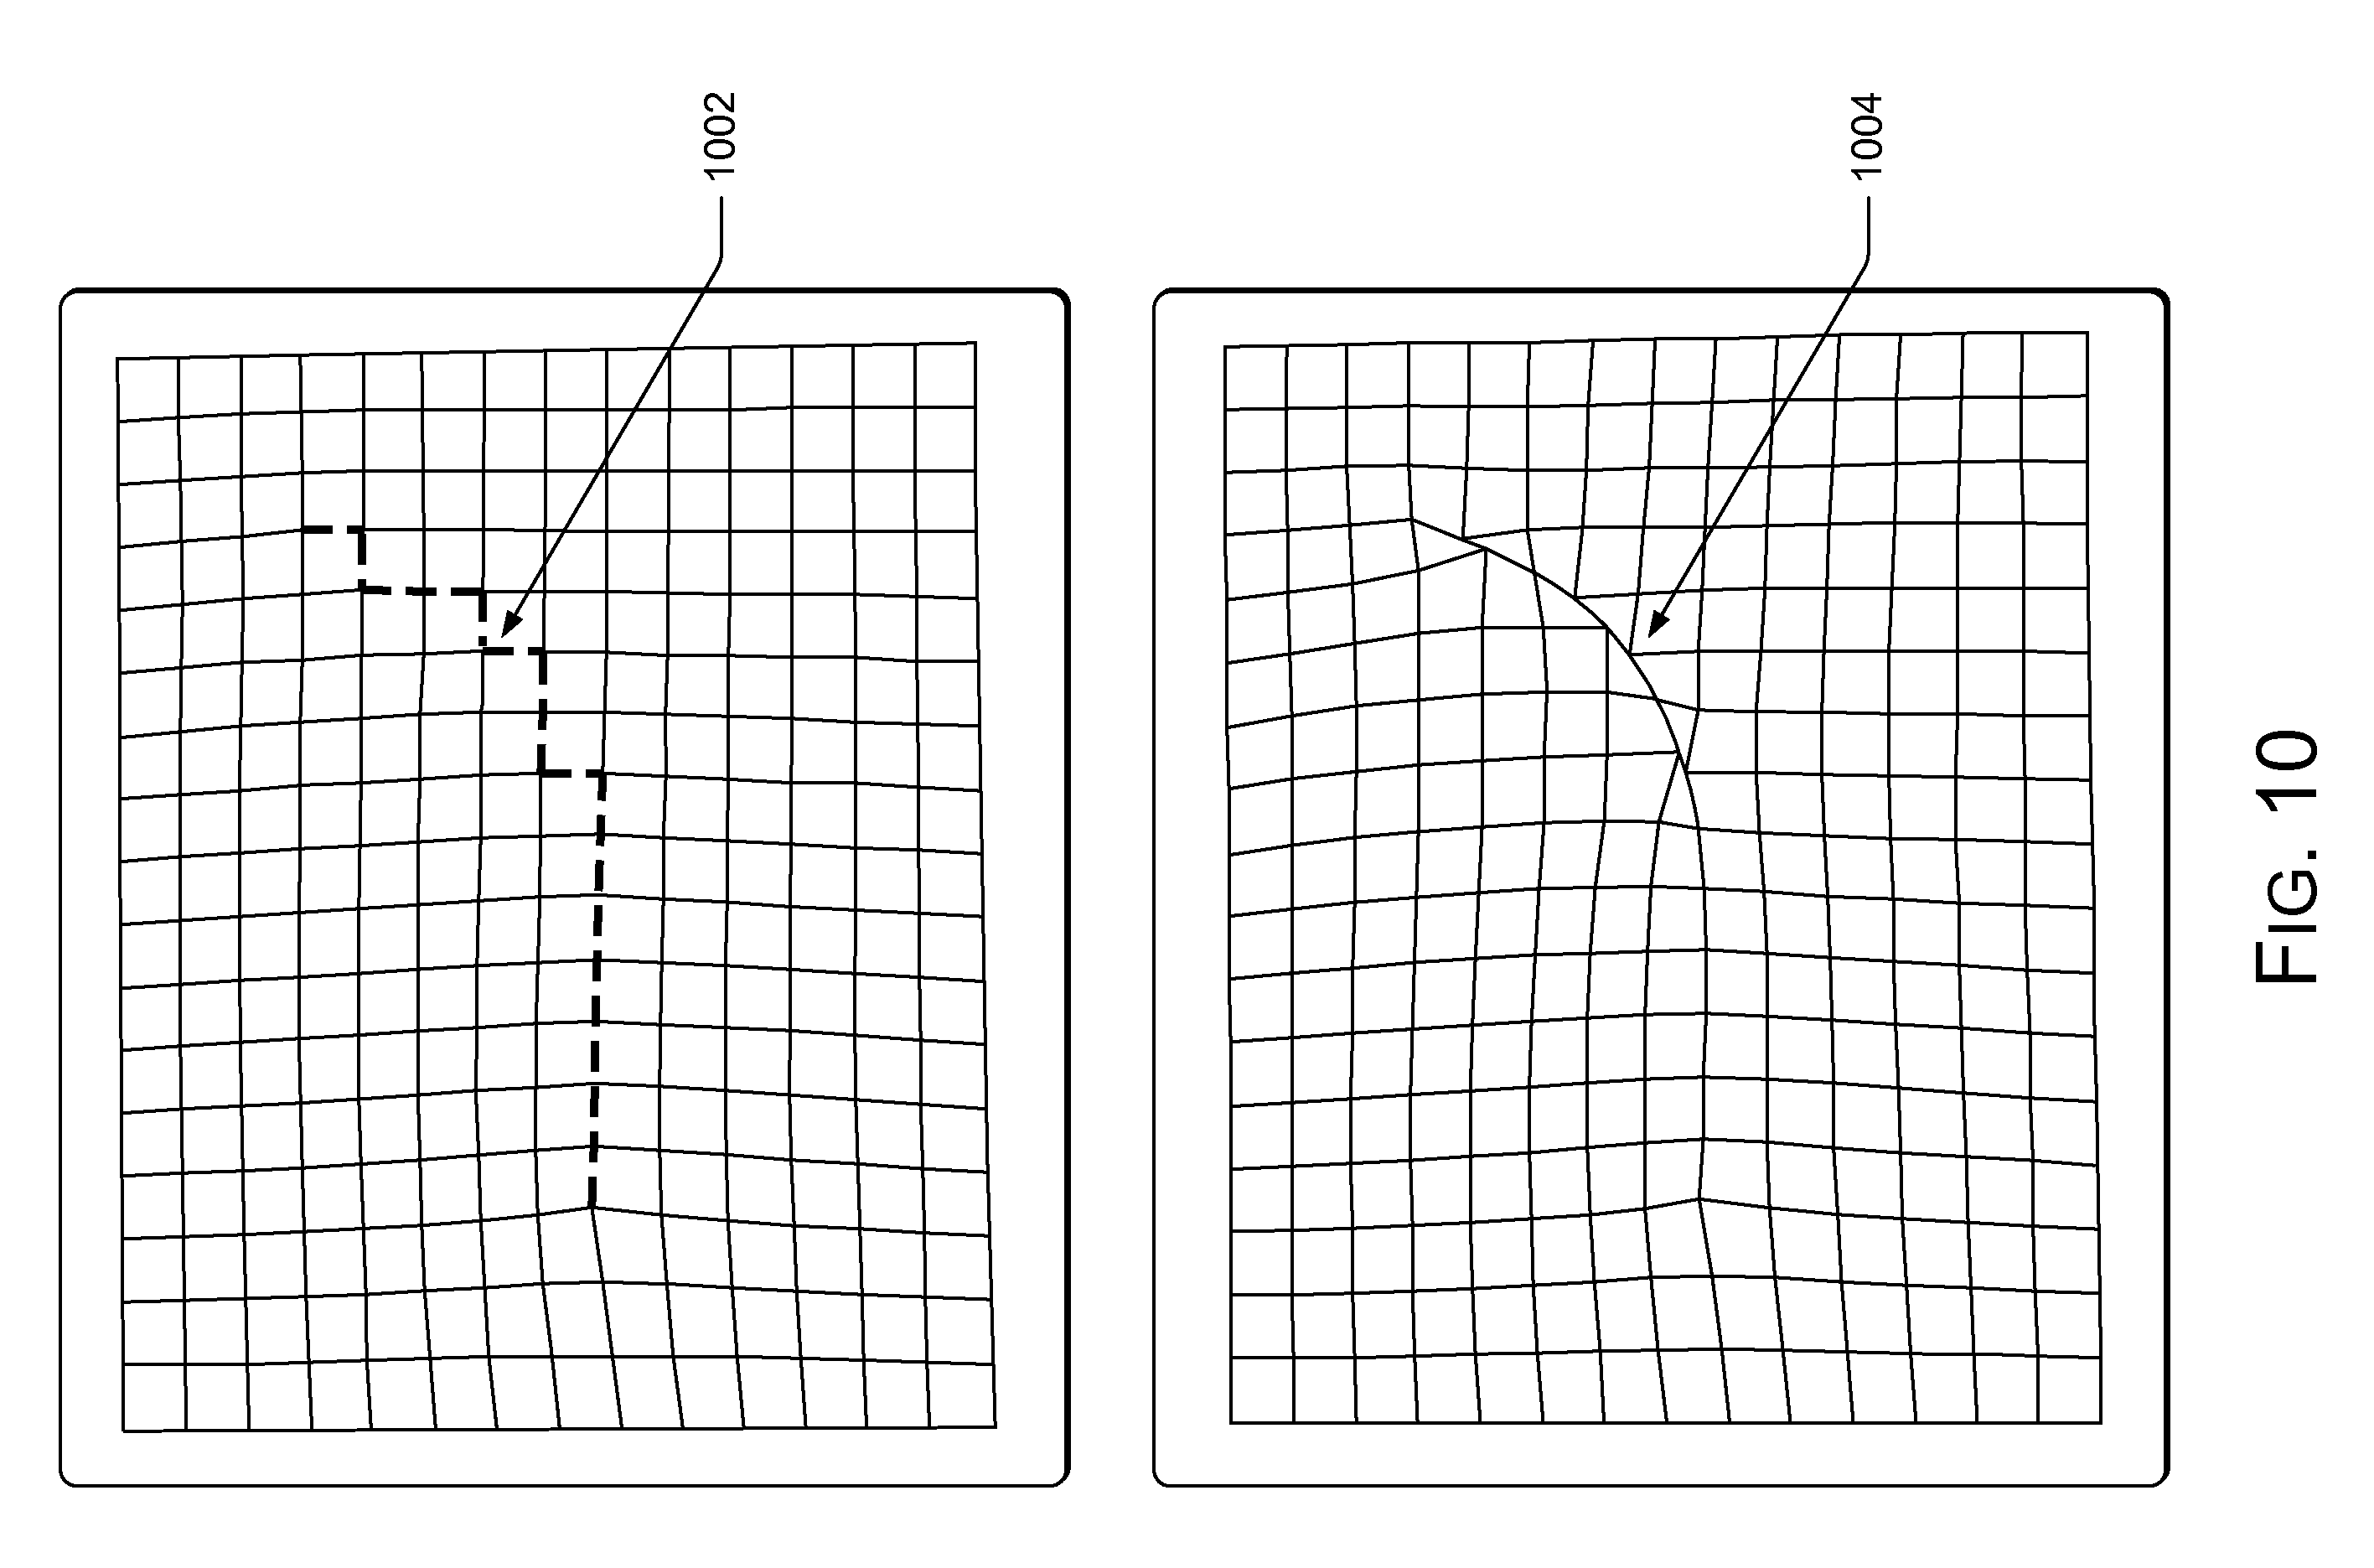 worksheet 1st Quadrant Grid single quadrant graphing pictures identifying polygons worksheets coordinate plane maker counting coins 1st grade us20120022837a1 20120126 d00010 makerhtml quadrant